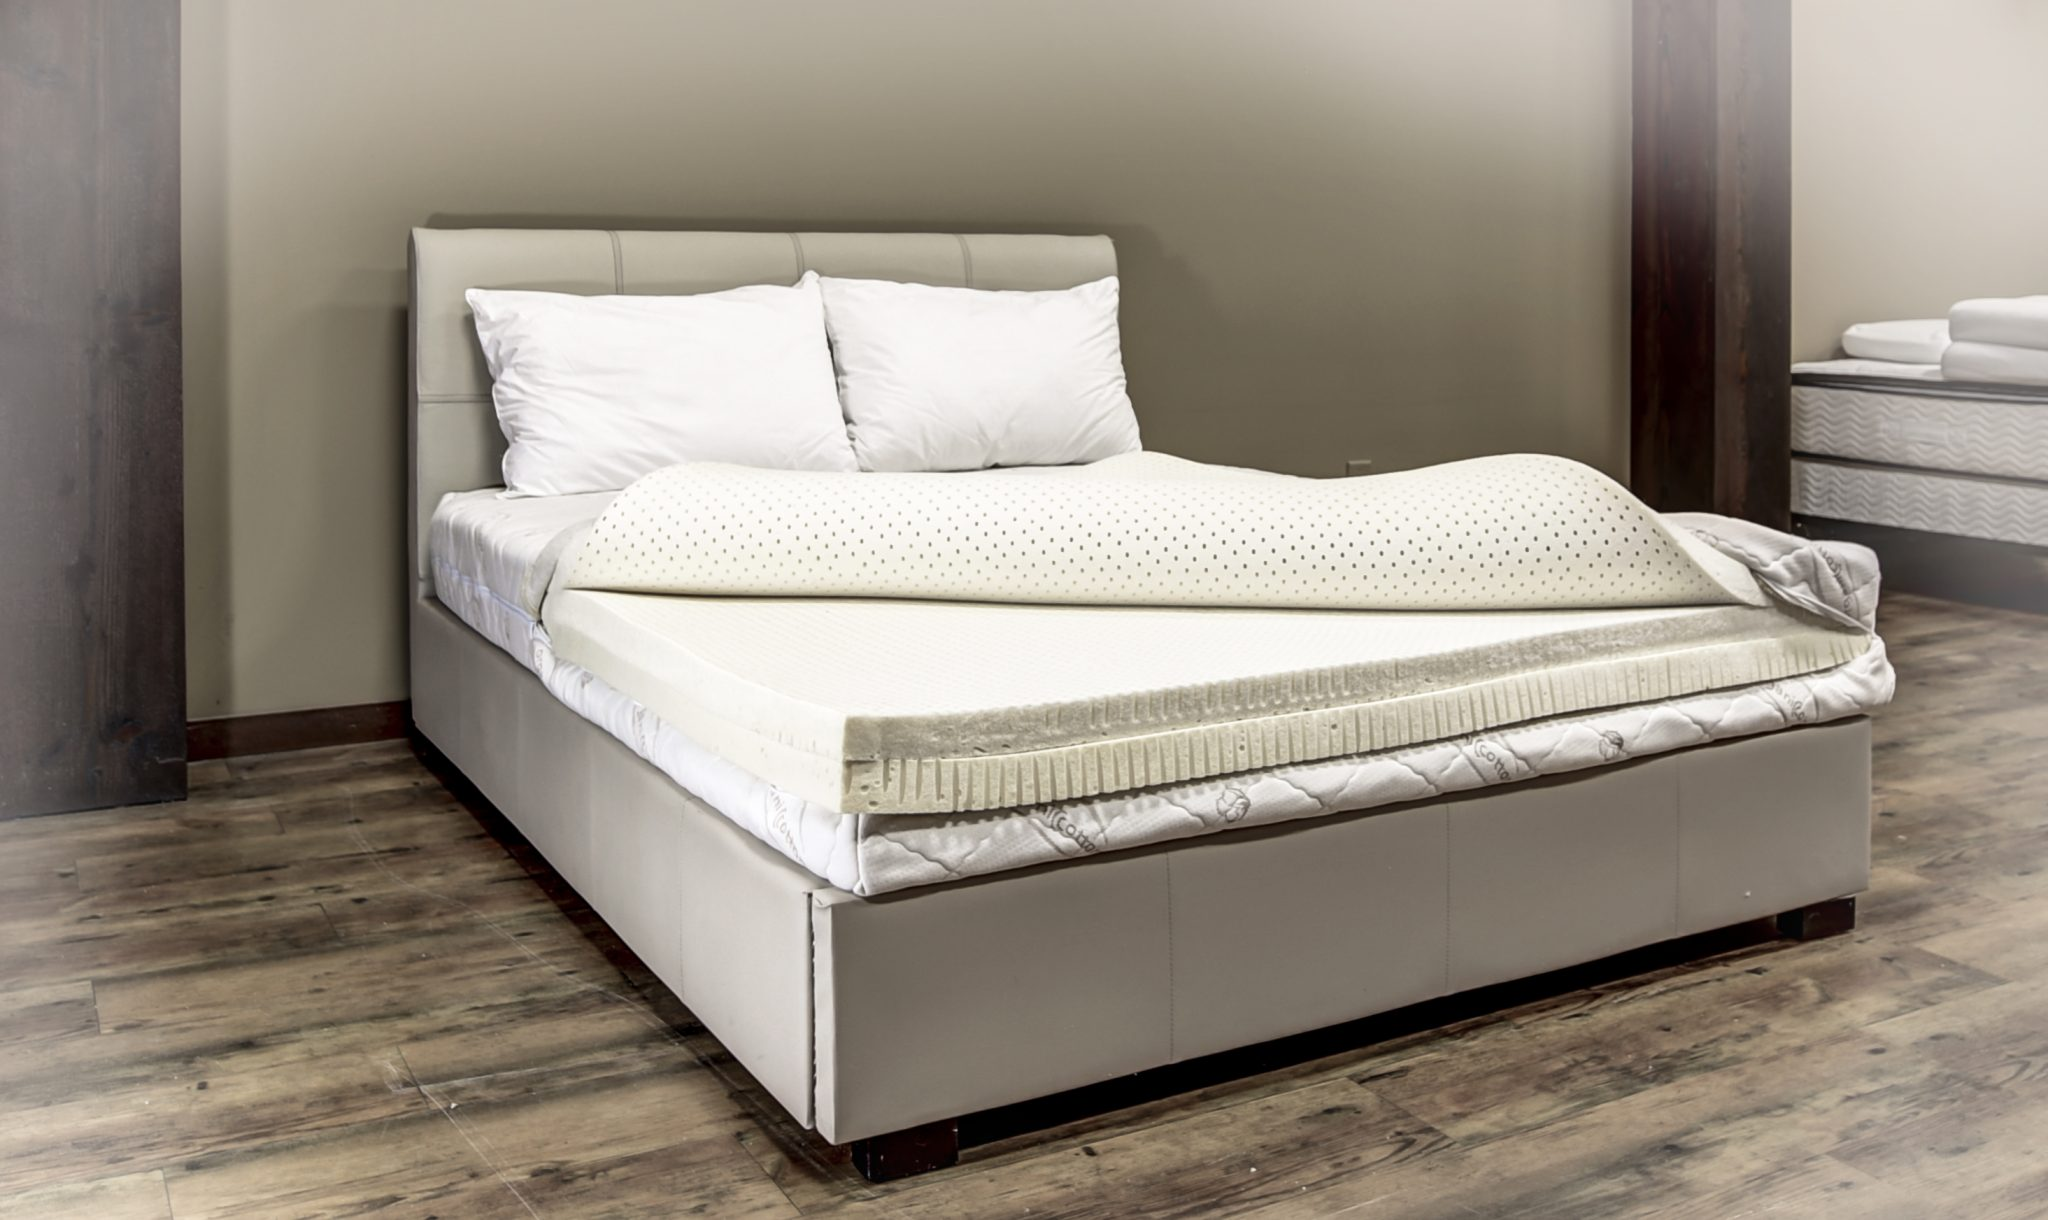 Majestic mattress kelowna mattress store canada for Affordable bedroom furniture canada